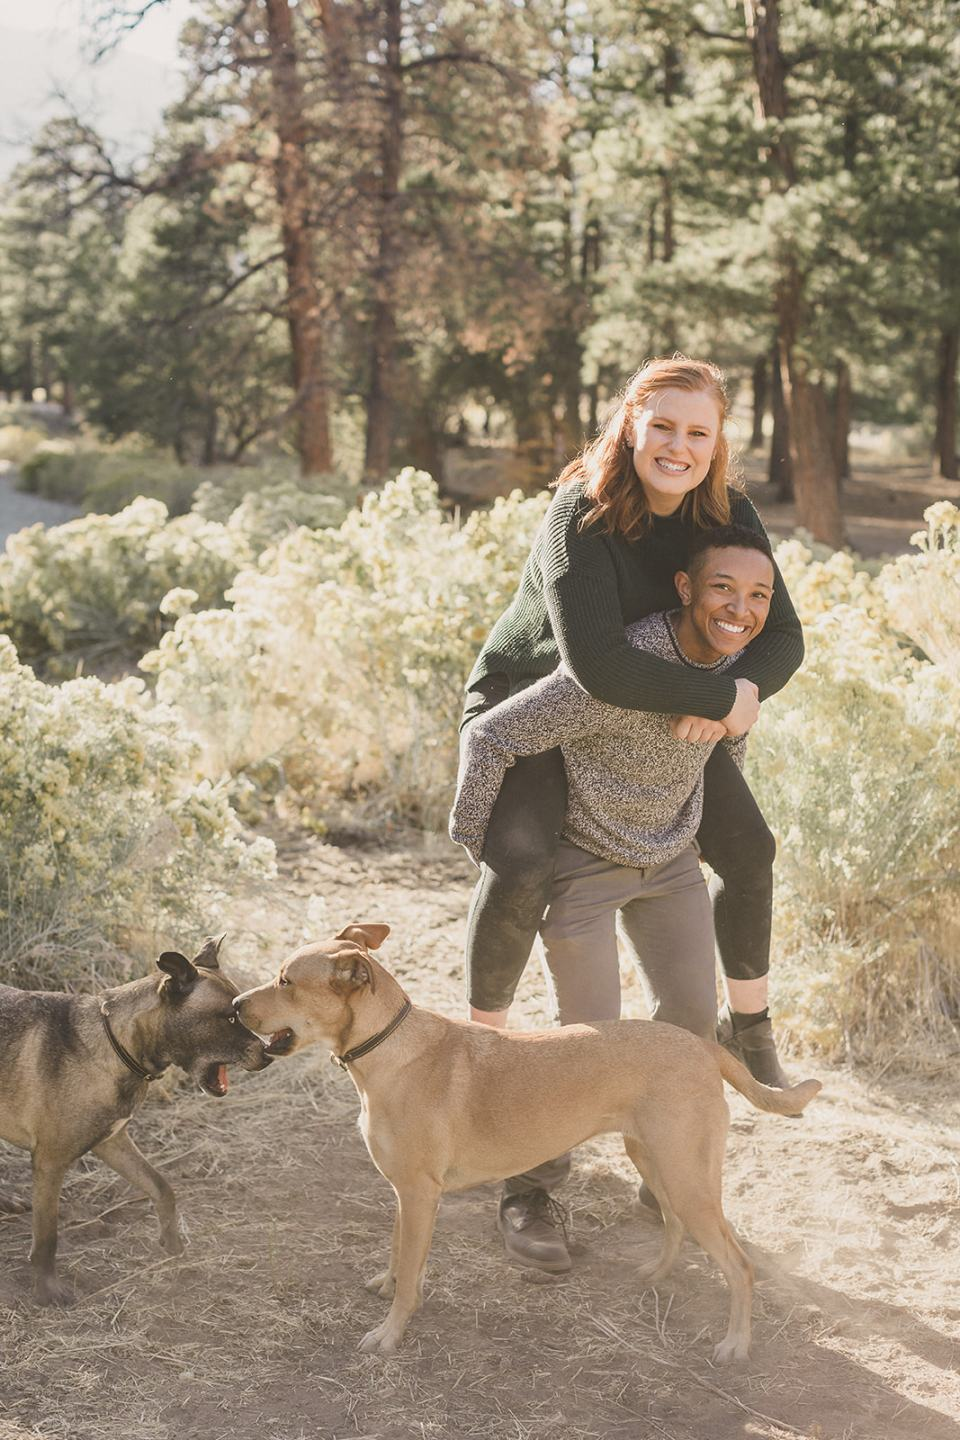 couple gives piggy back ride while dogs play